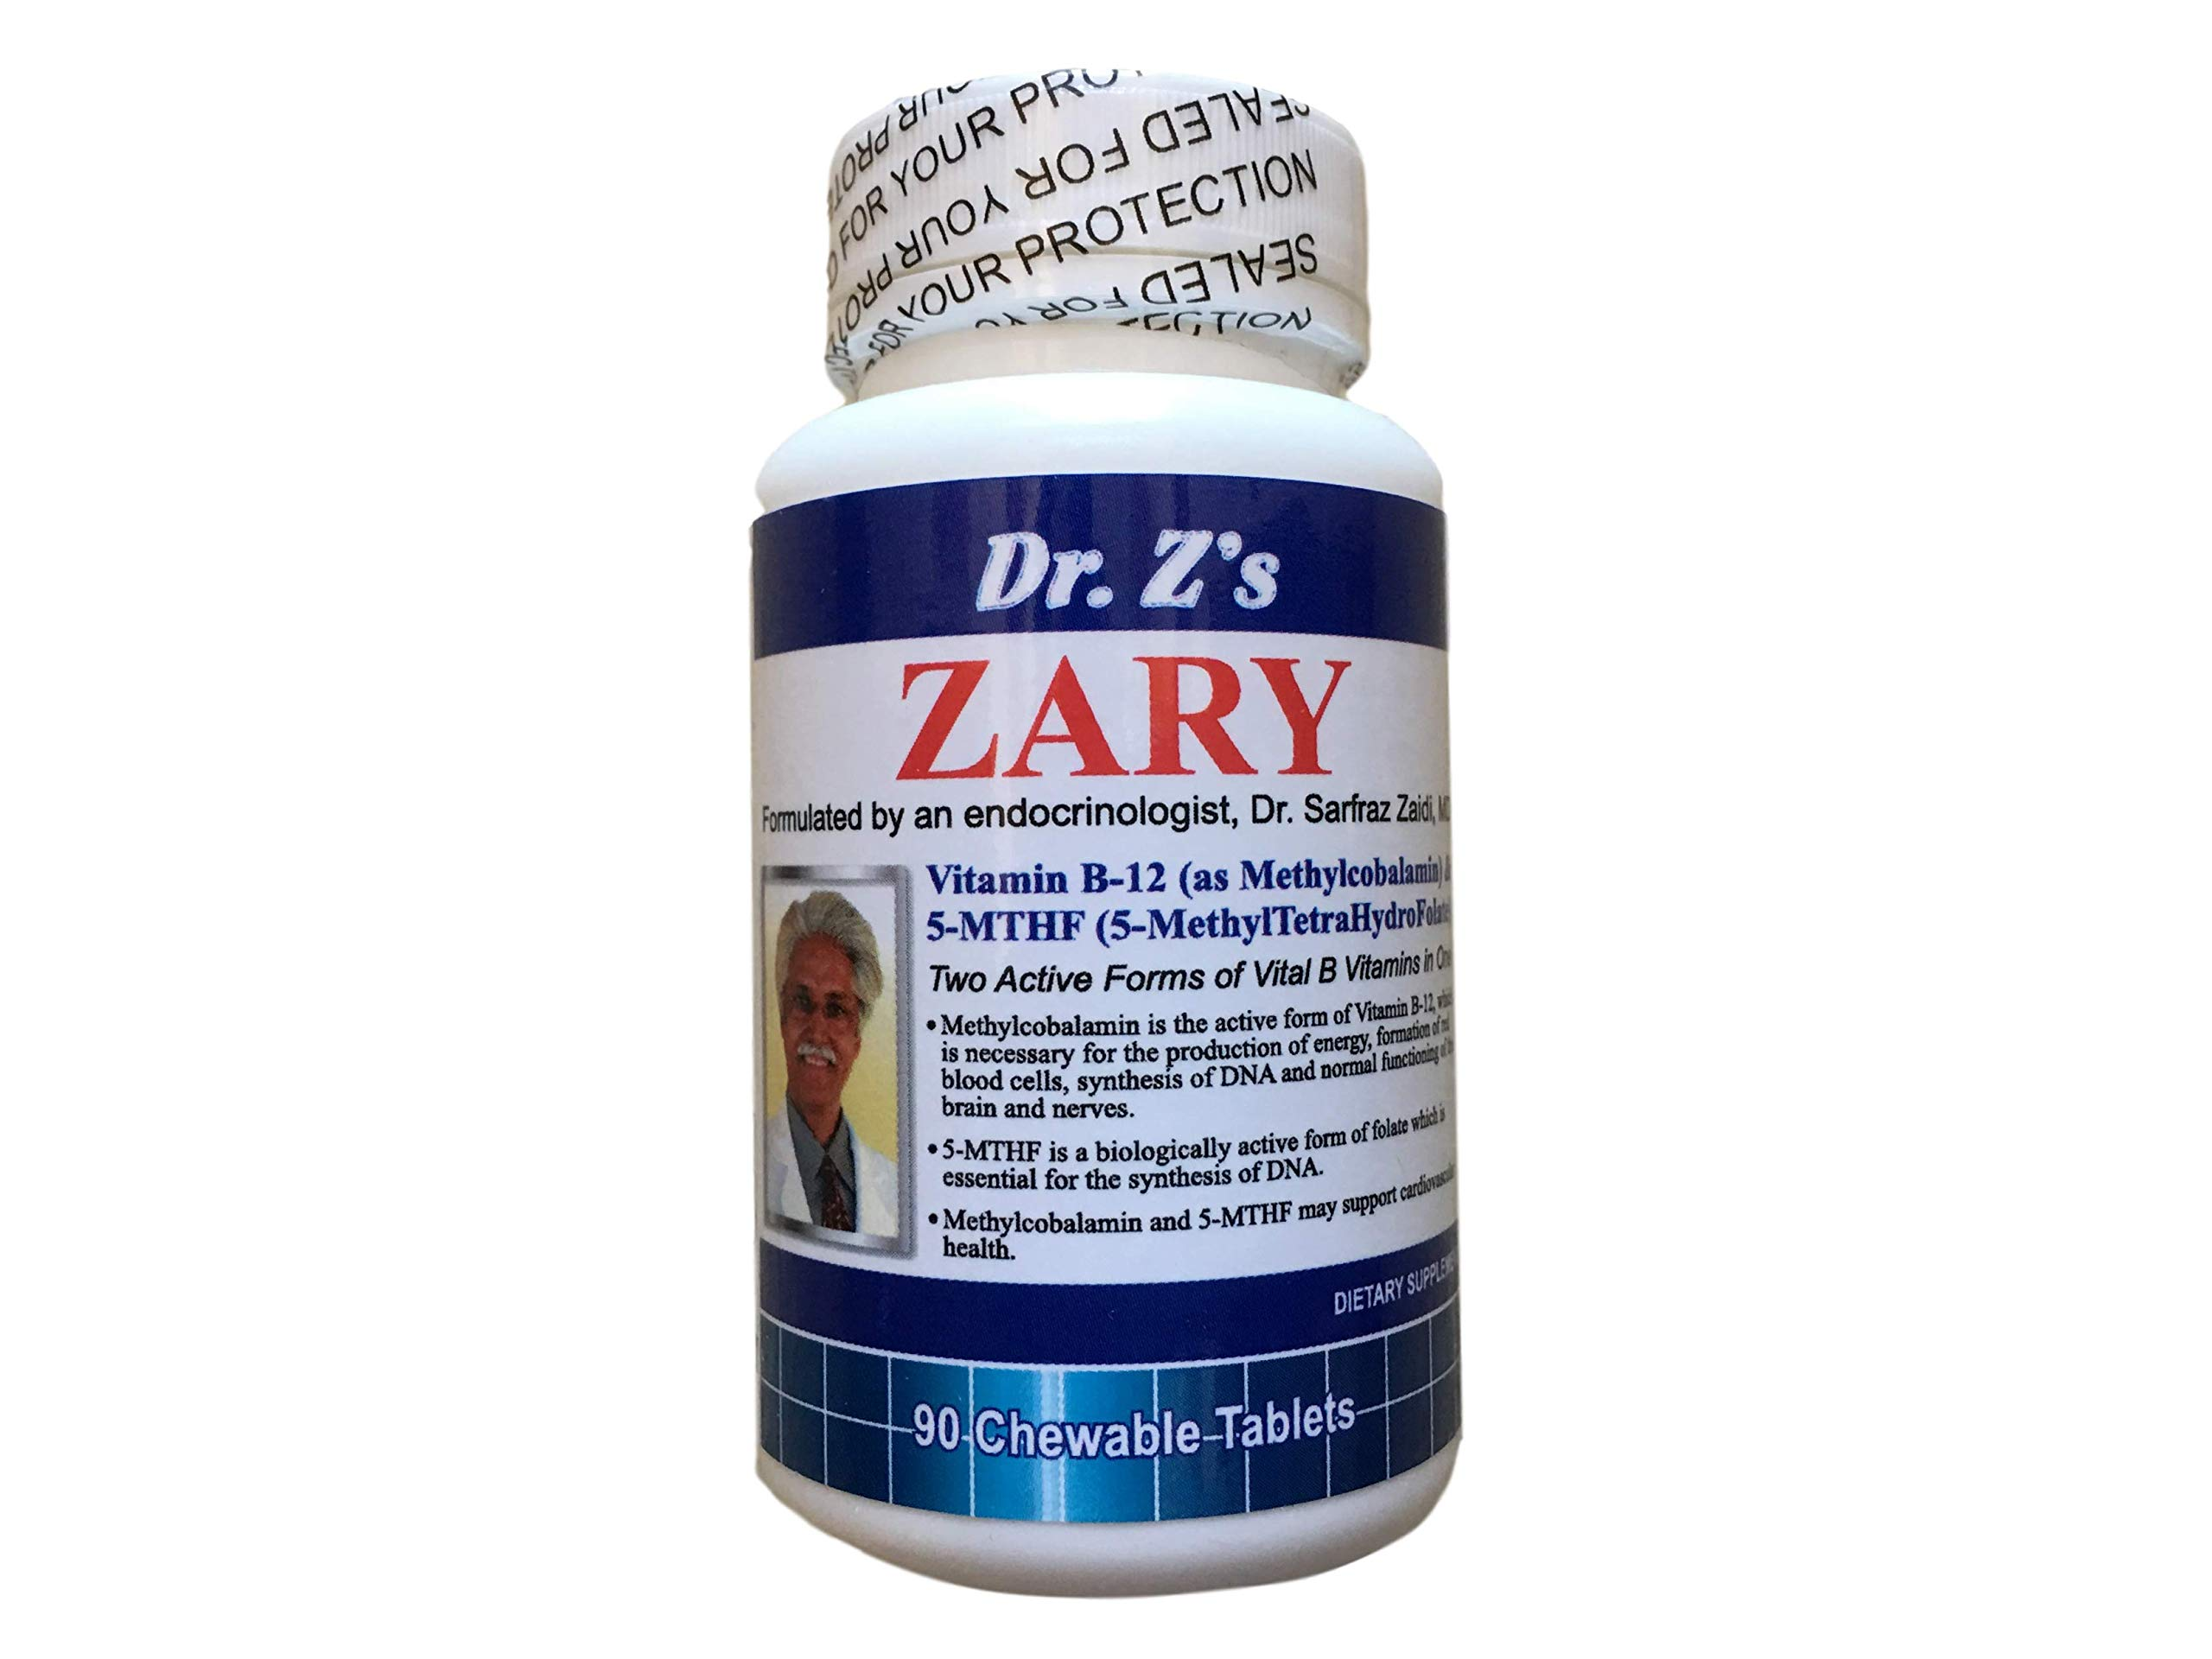 Dr. Z's - ZARY - Methylcobalamin, 5 MTHF Combination - Two Active Forms of Vital B Vitamins in One - 90 Count